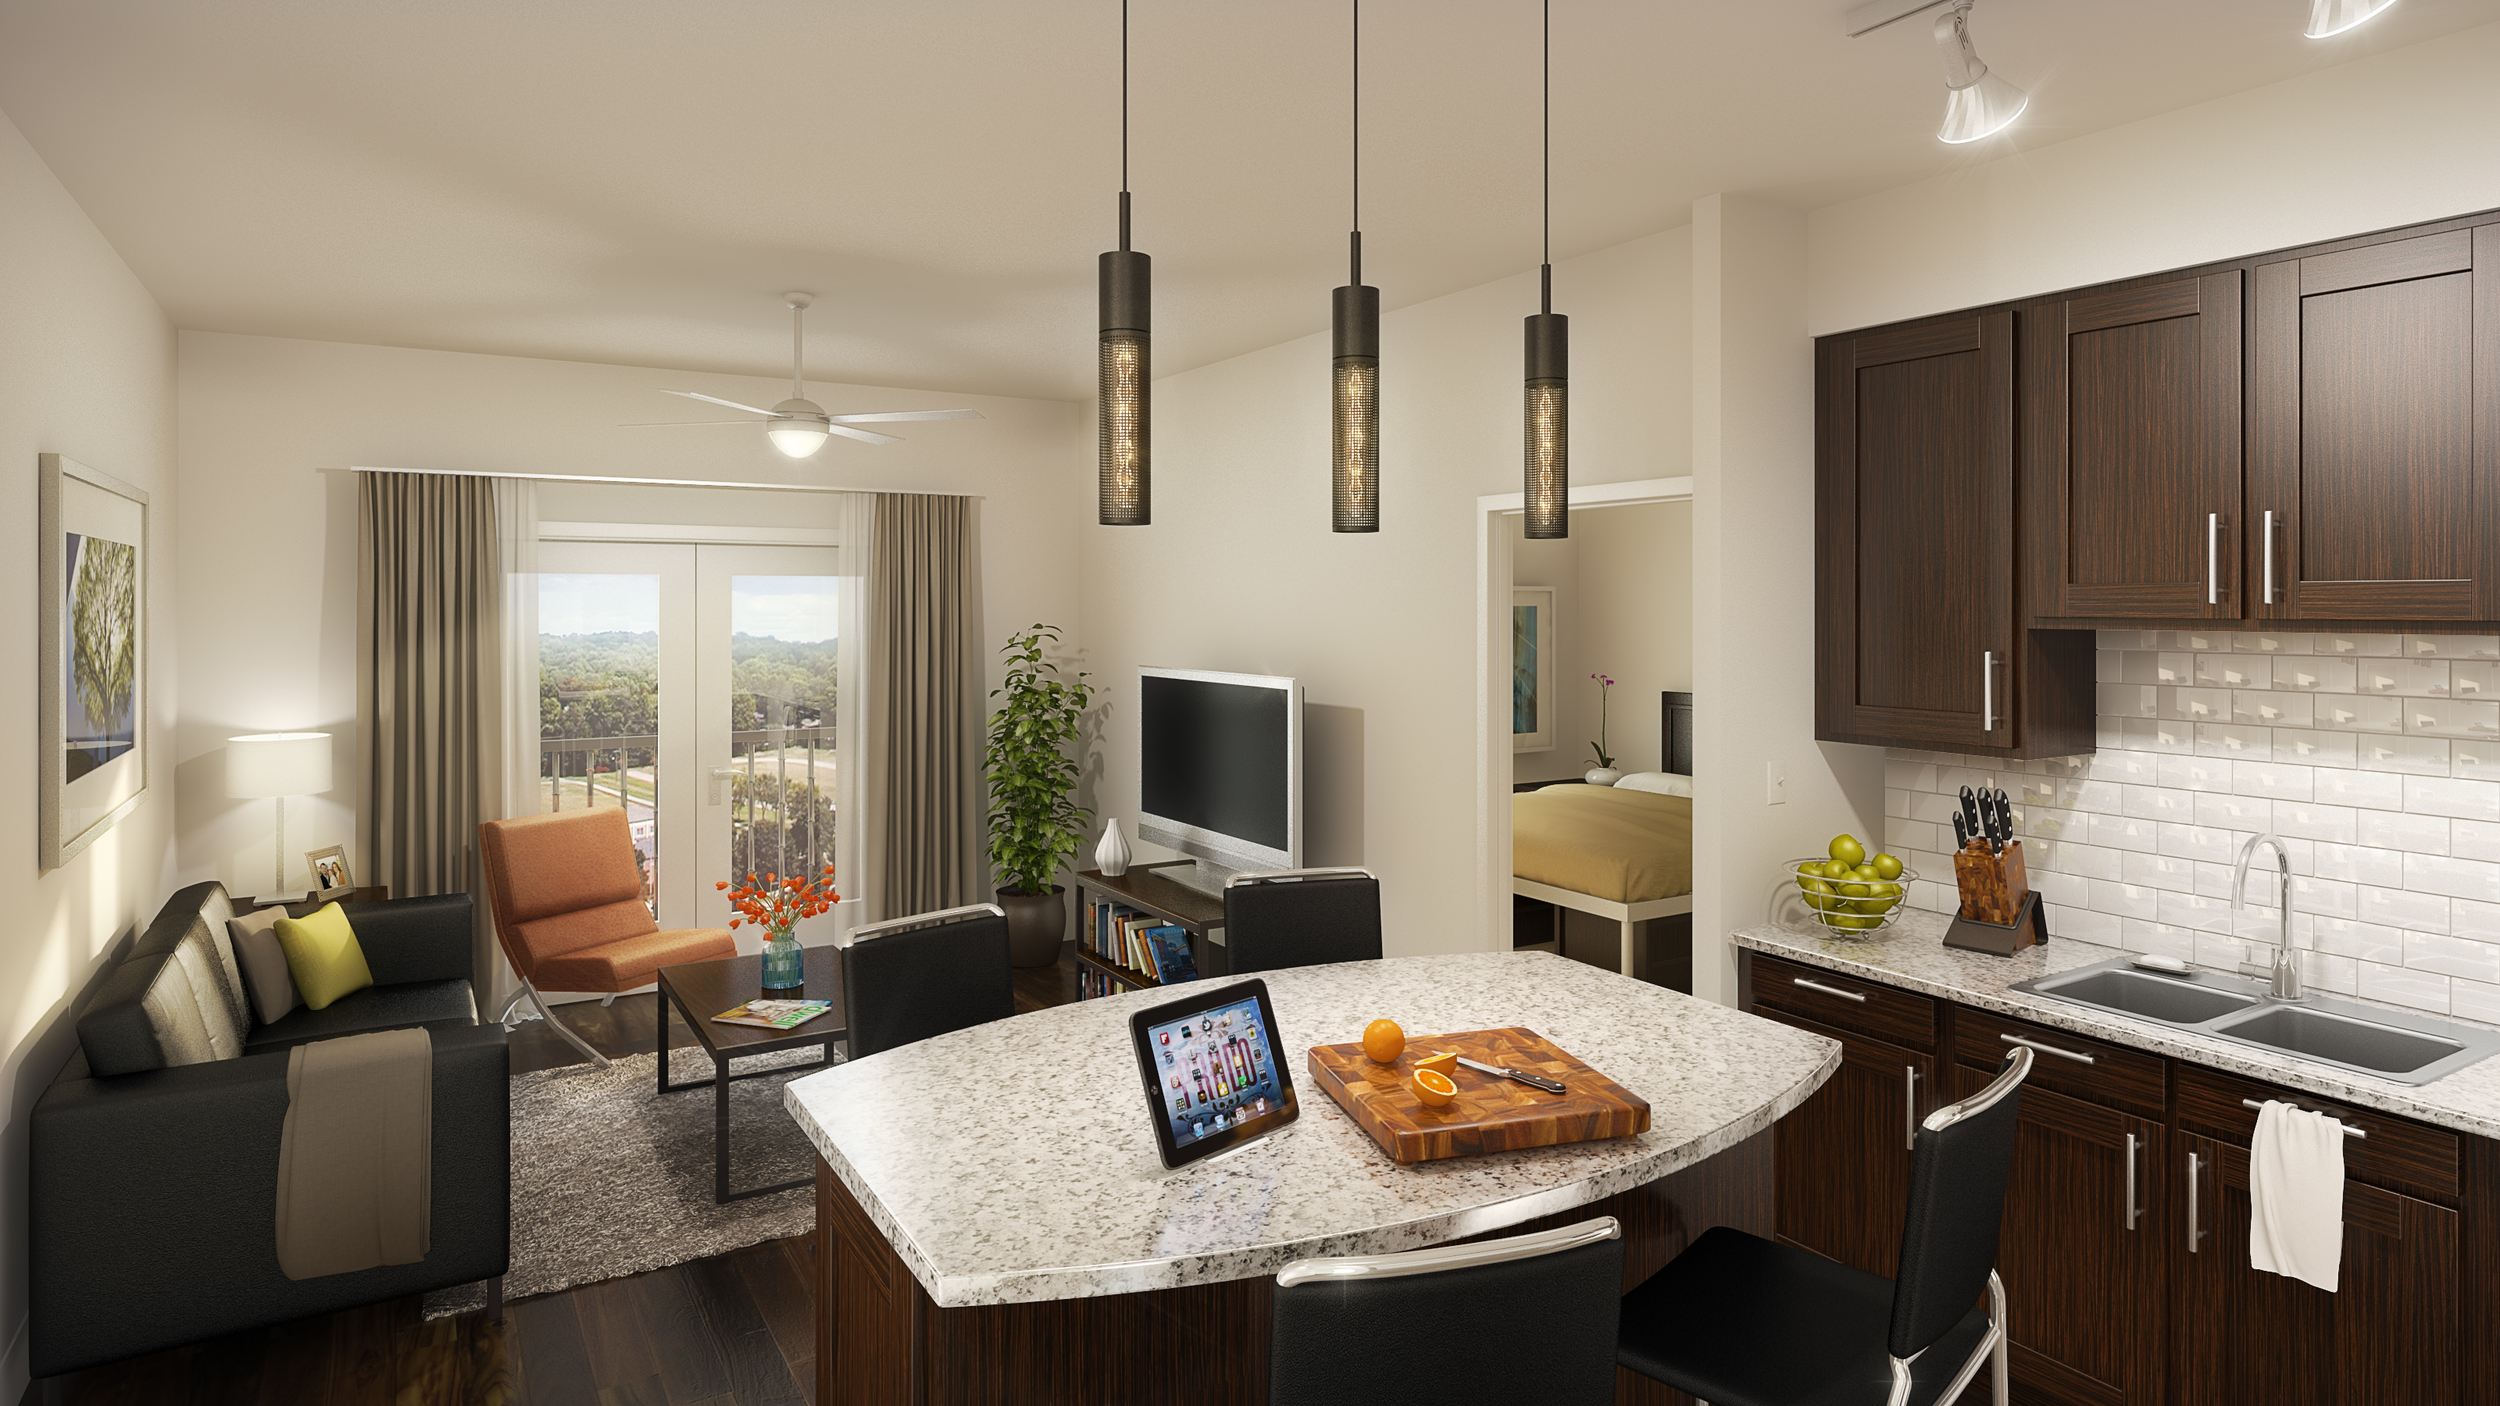 TYPICAL UNIT INTERIOR  rendering by cagleart.com